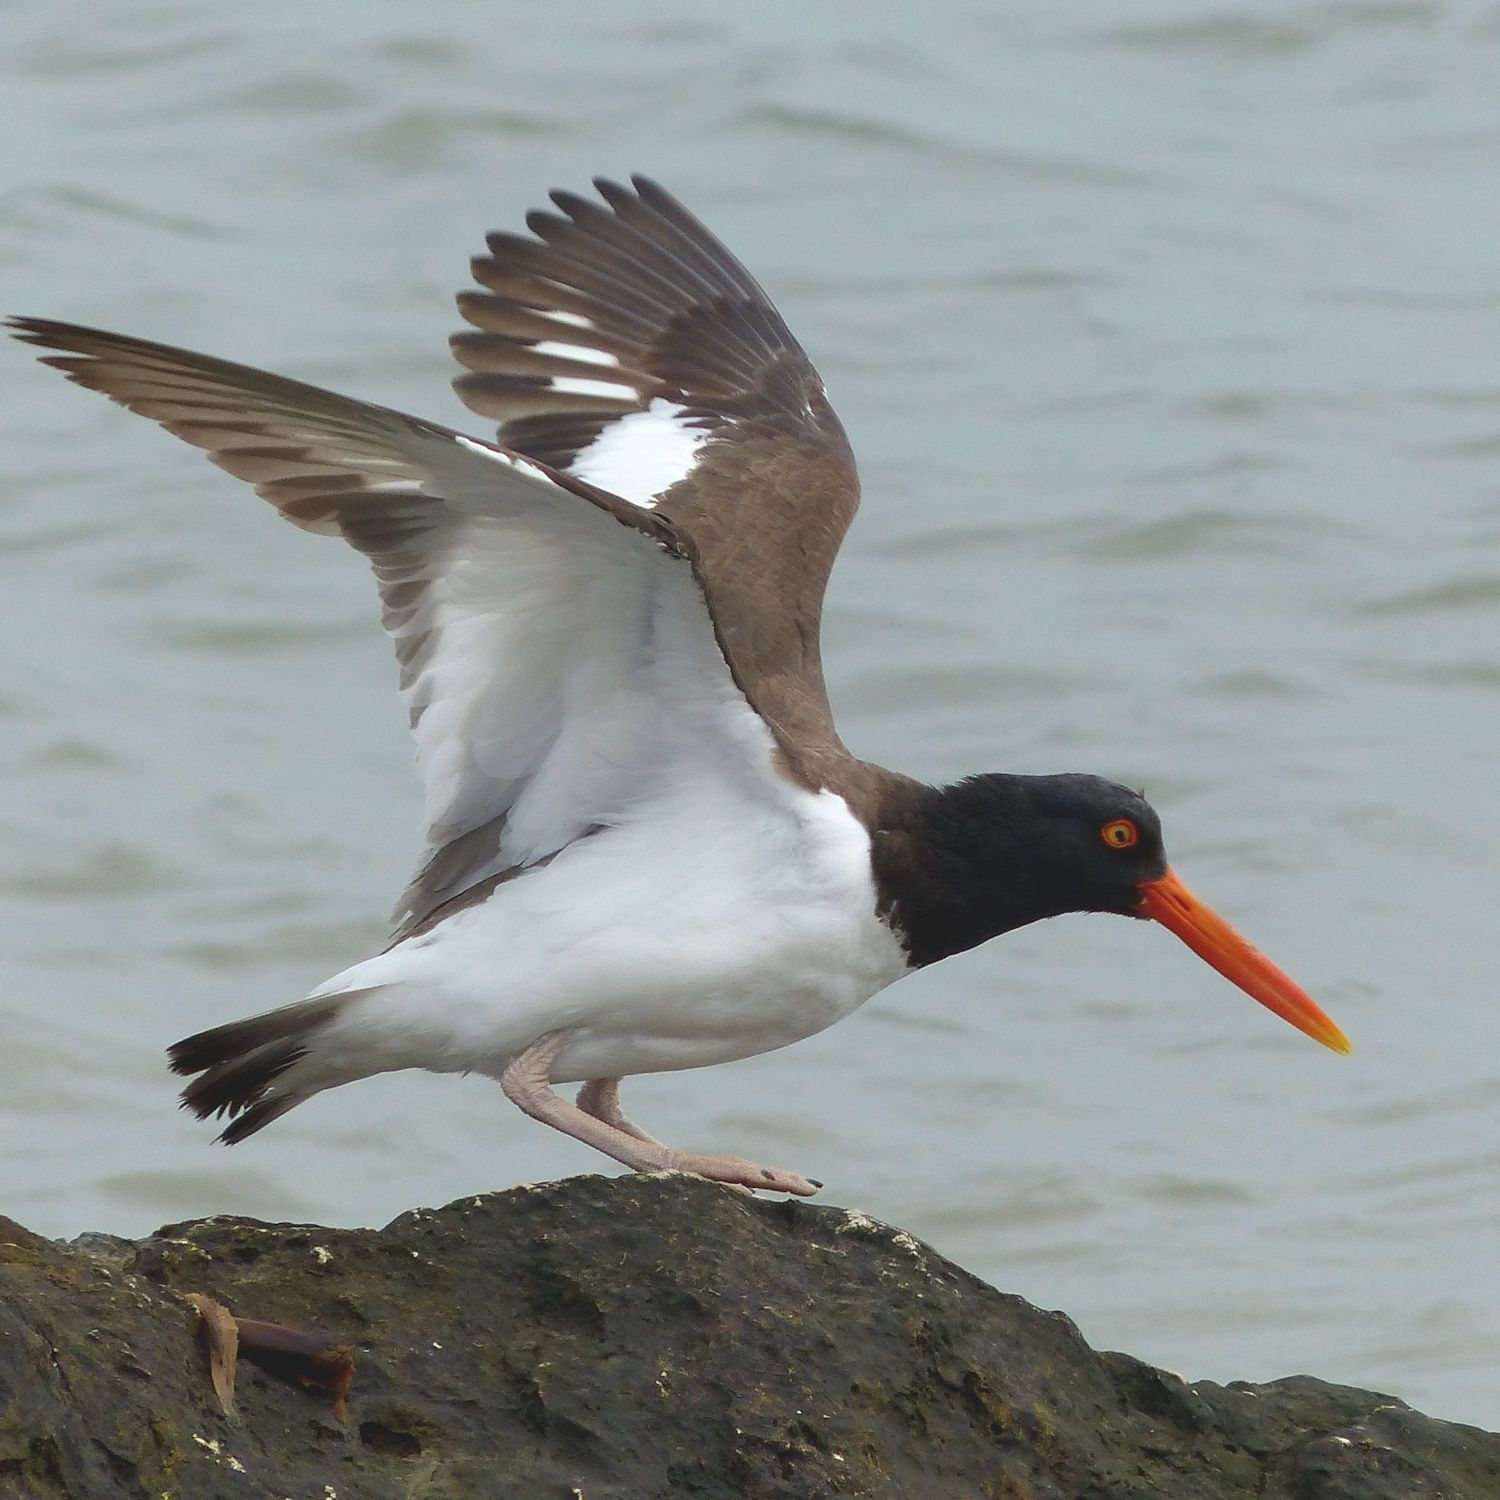 Oystercatcher taking off to find more oysters